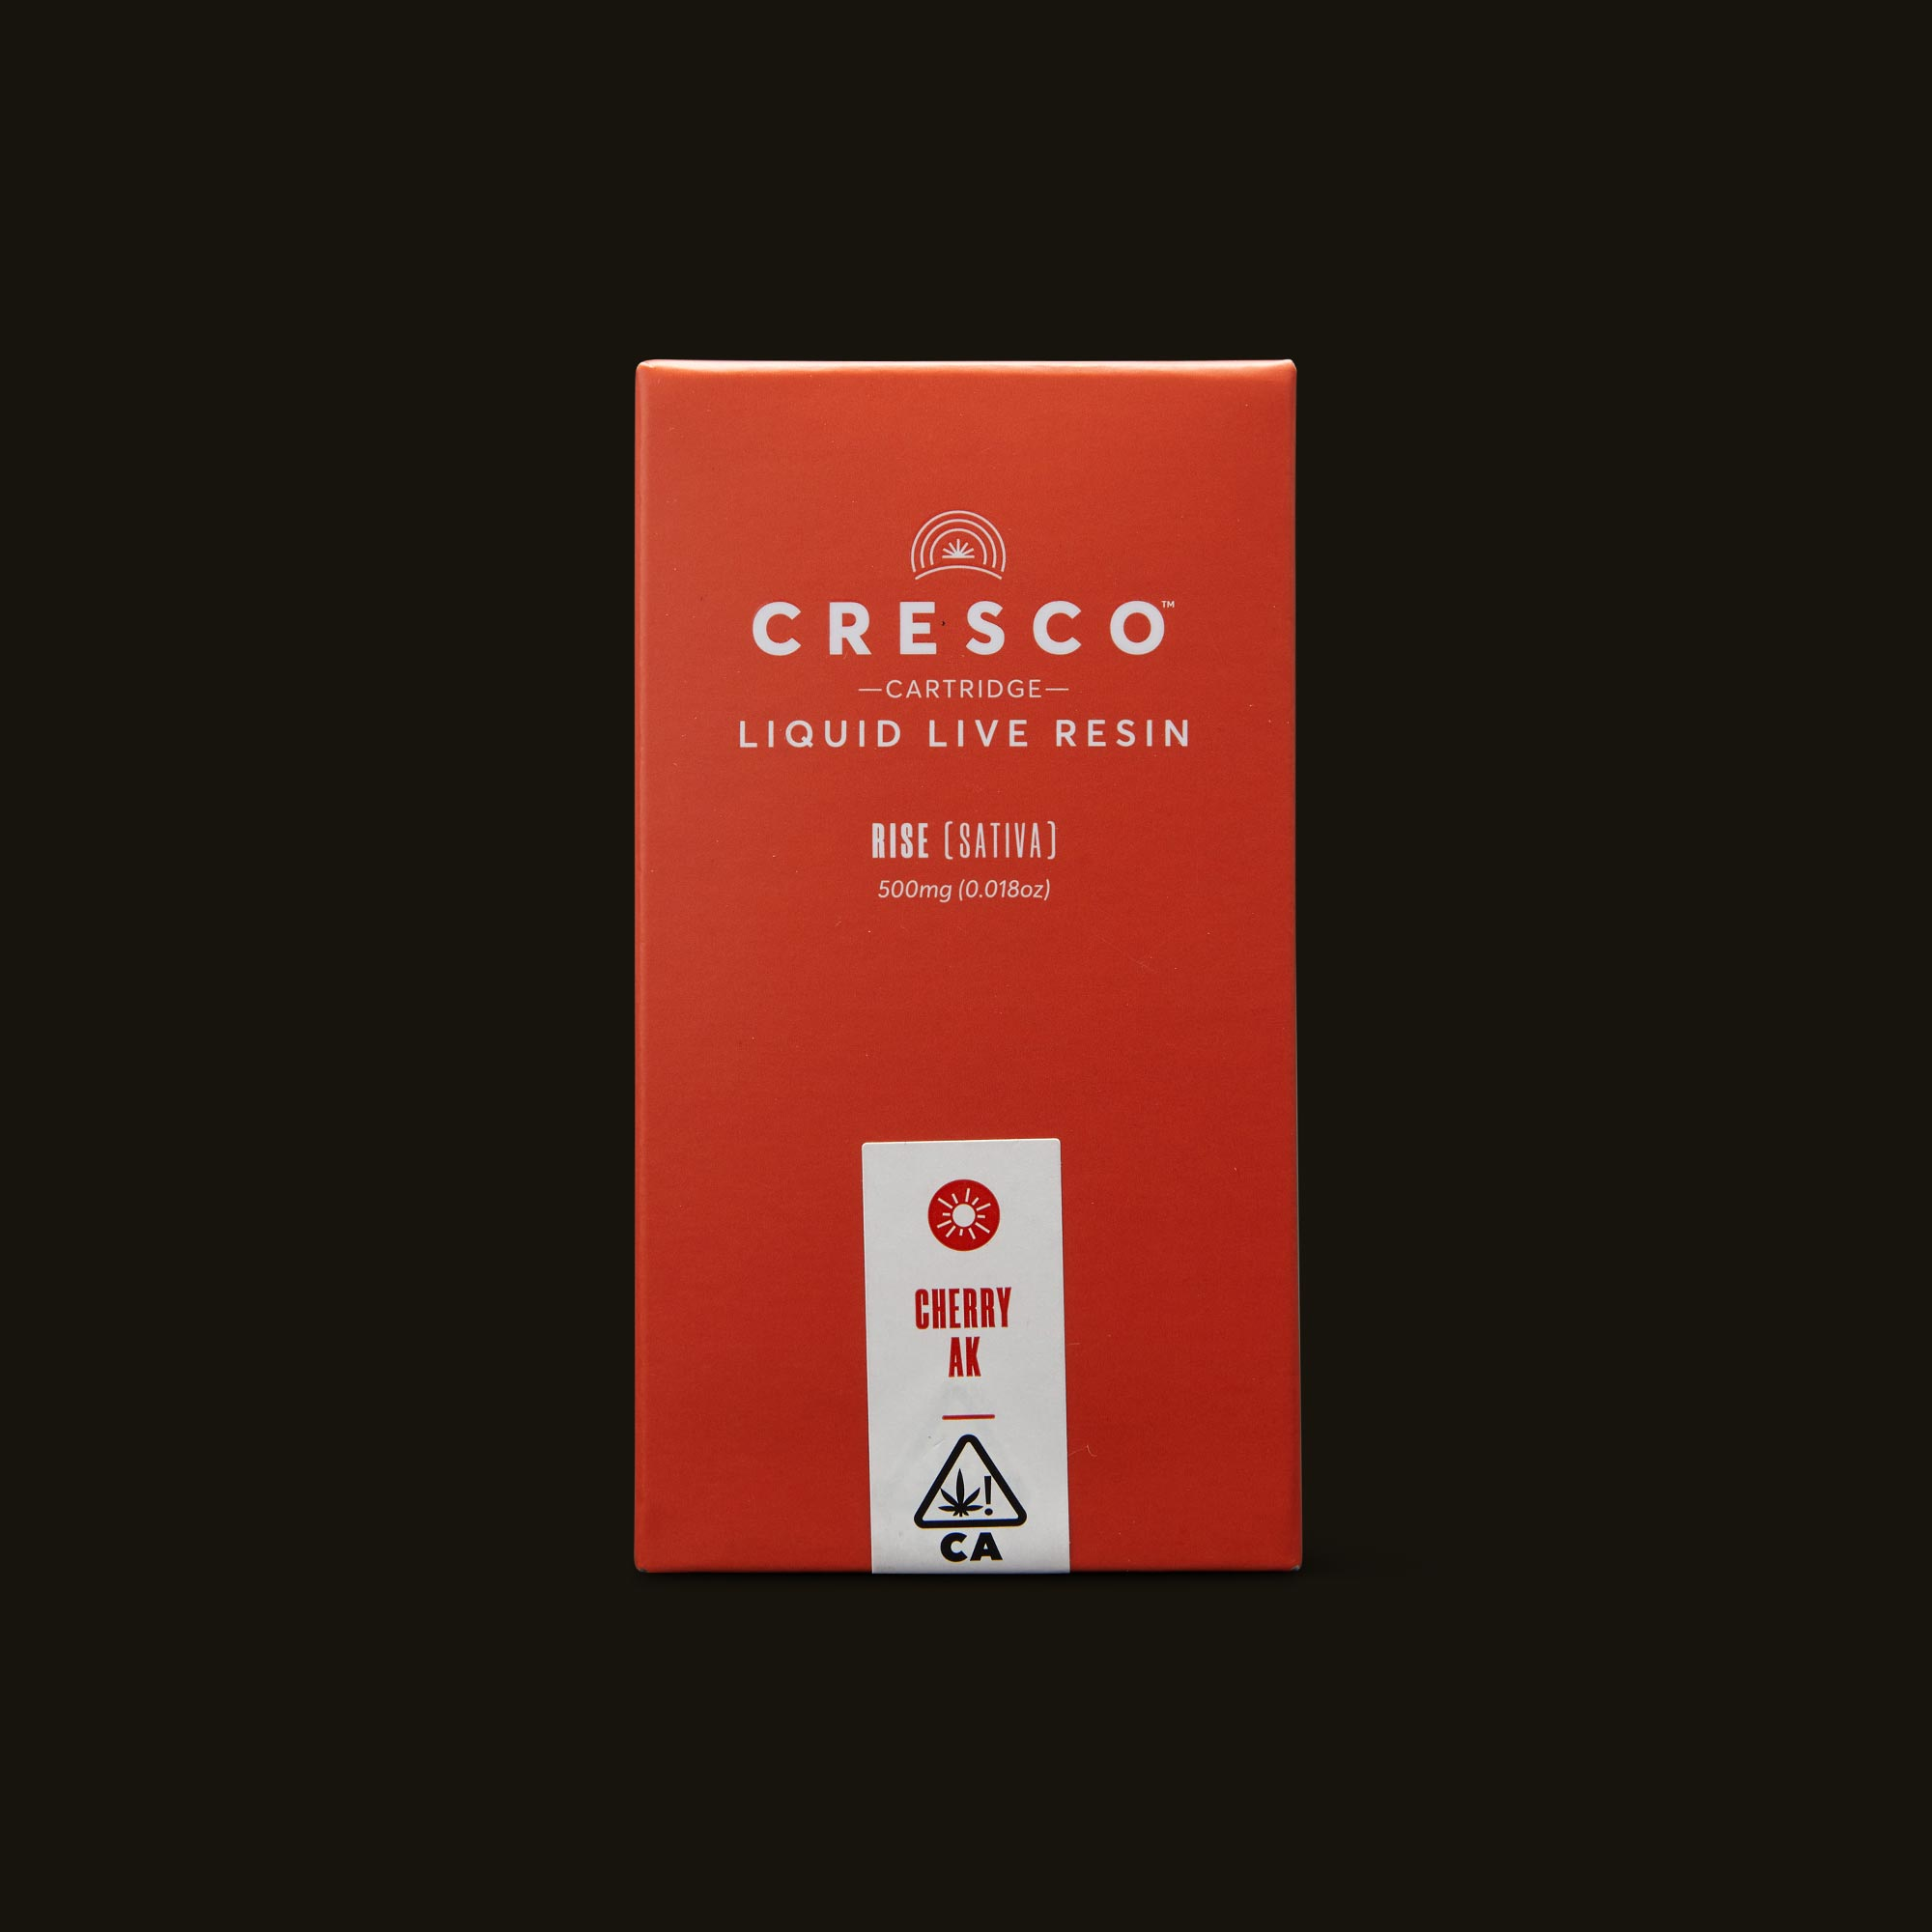 Cresco Cherry AK Liquid Live Resin Cartridge Front Packaging